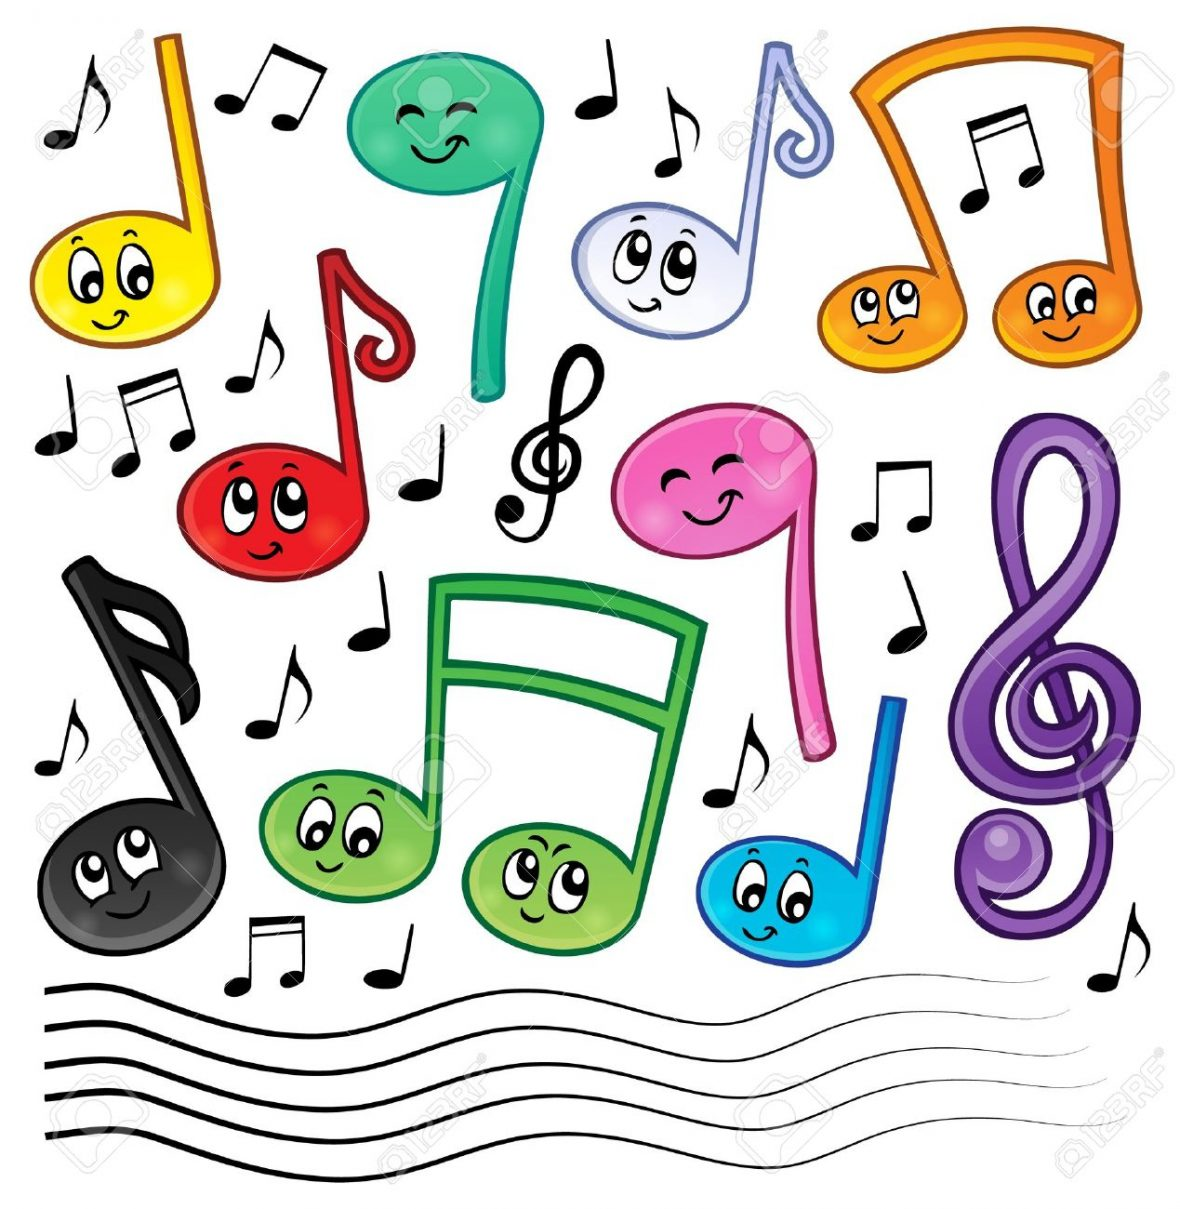 36328235-cartoon-music-notes-theme-image-1-eps10-vector-illustration-